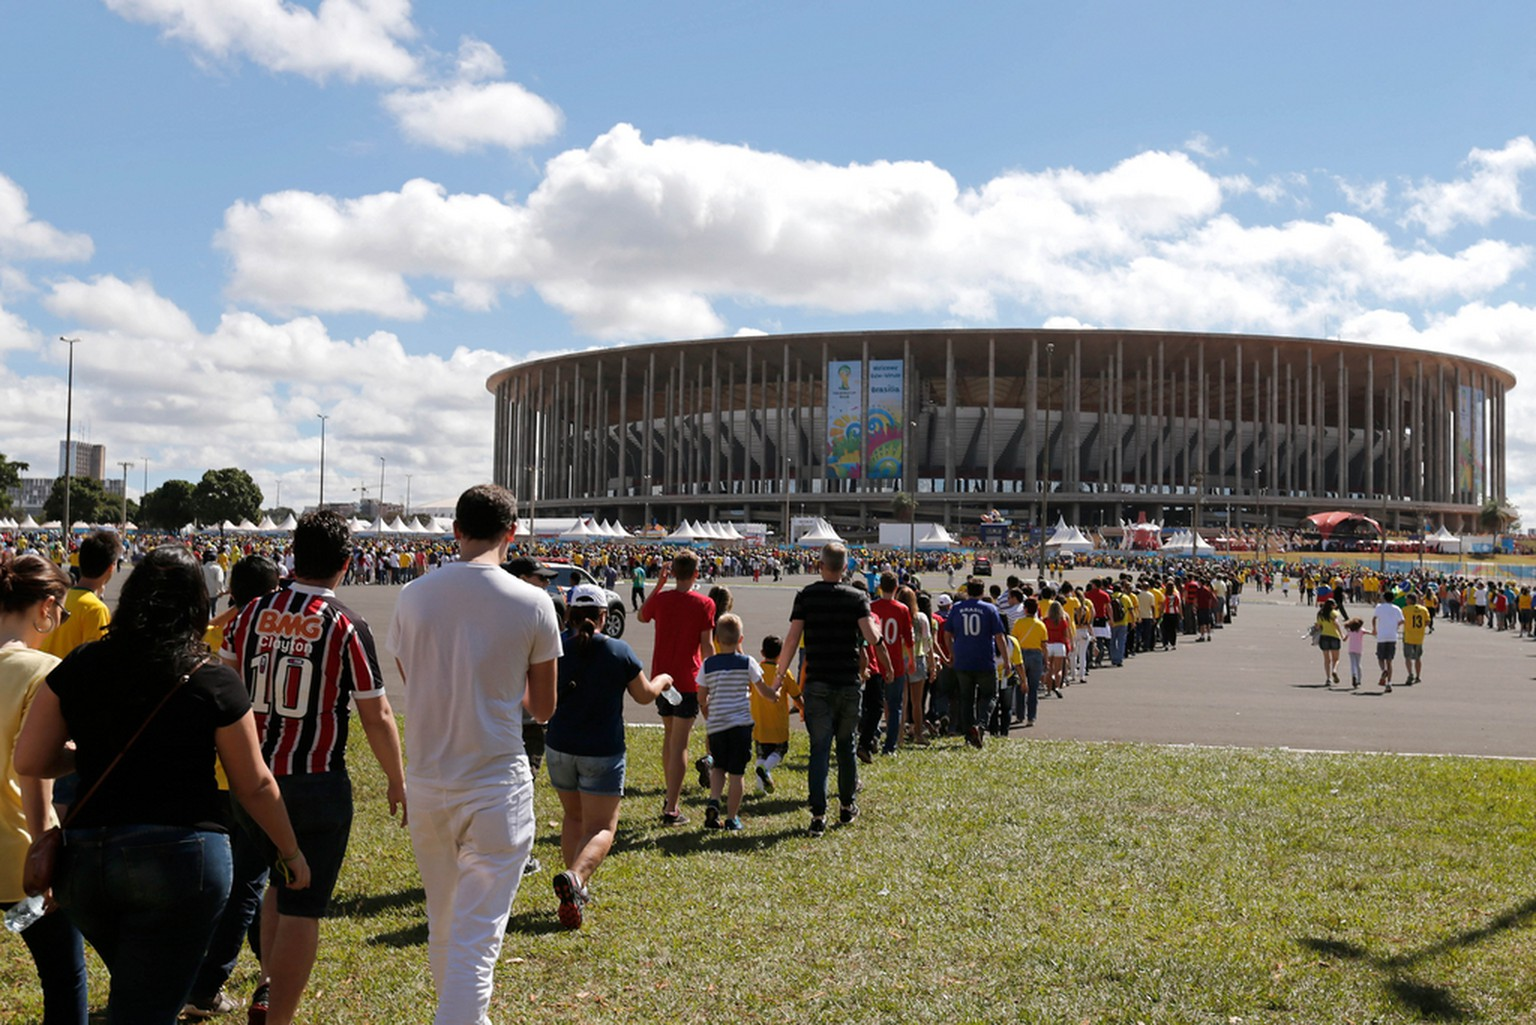 Fans waiting in long lines advance slowly to enter the National Stadium before the start of the match between Ecuador vs Switzerland, in Brasilia, Brazil, Sunday, June 15, 2014. (AP Photo/Eraldo Peres)